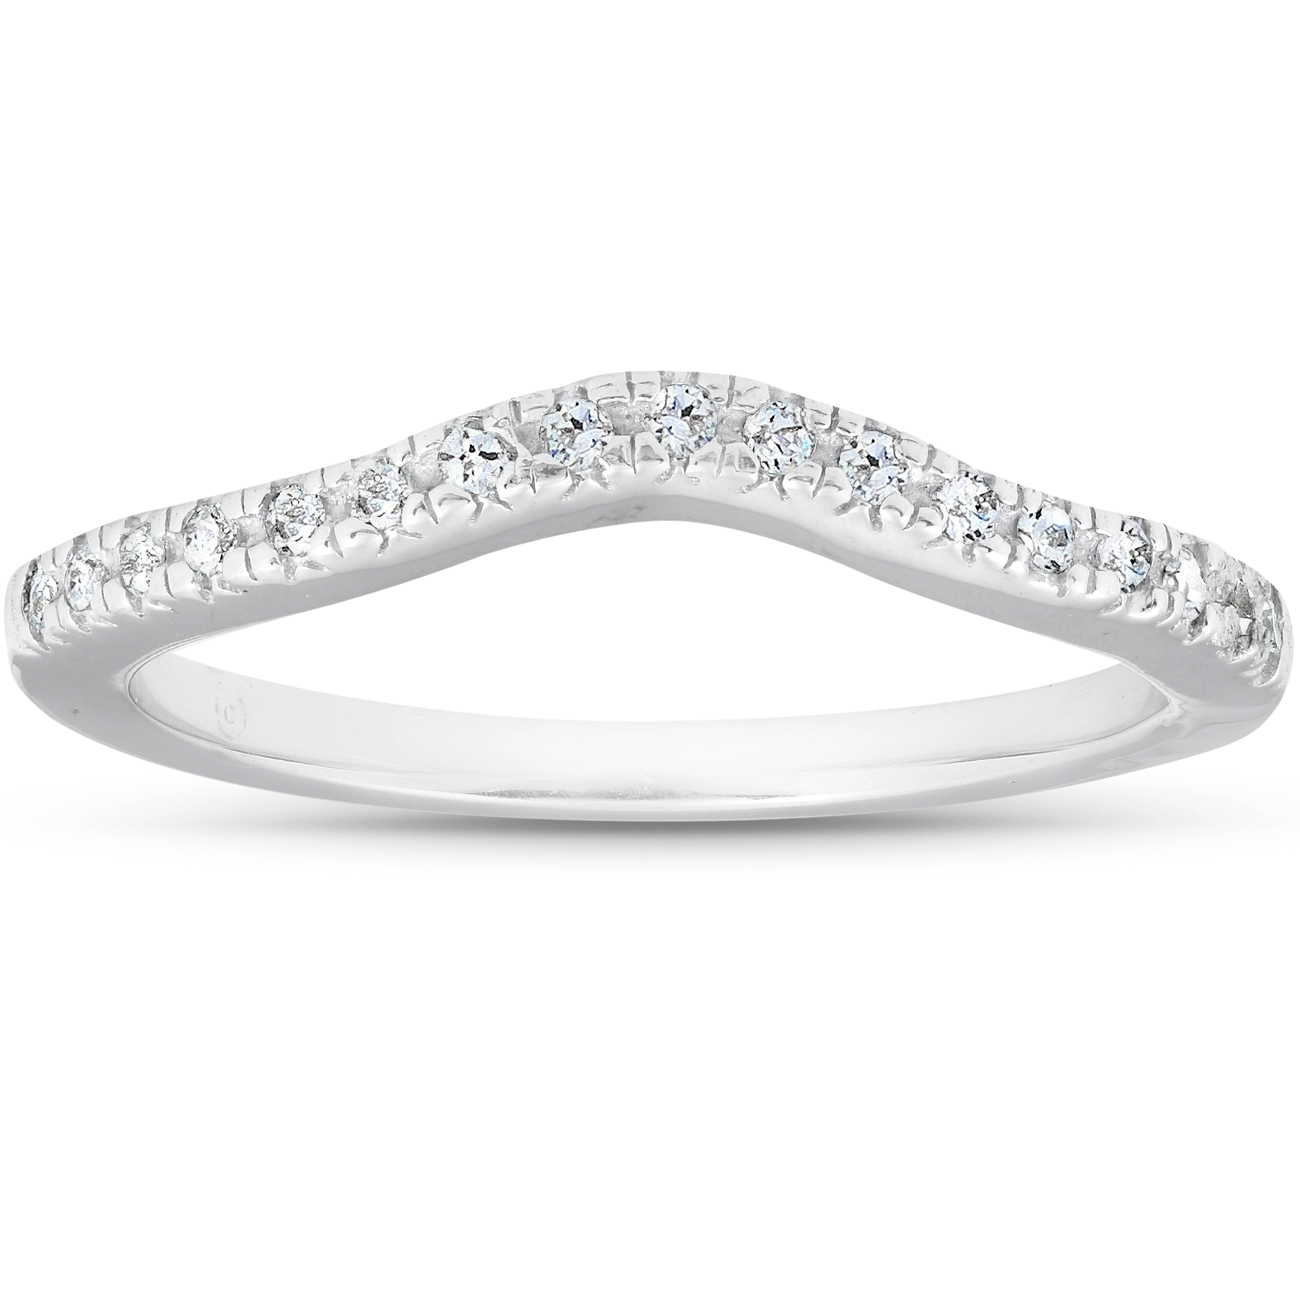 Details About 1/8 Ct Curved Diamond Contour Wedding Engagement Notched Ring  14K White Gold With Regard To Most Current Certified Princess Cut Diamond Contour Anniversary Bands In White Gold (View 10 of 25)